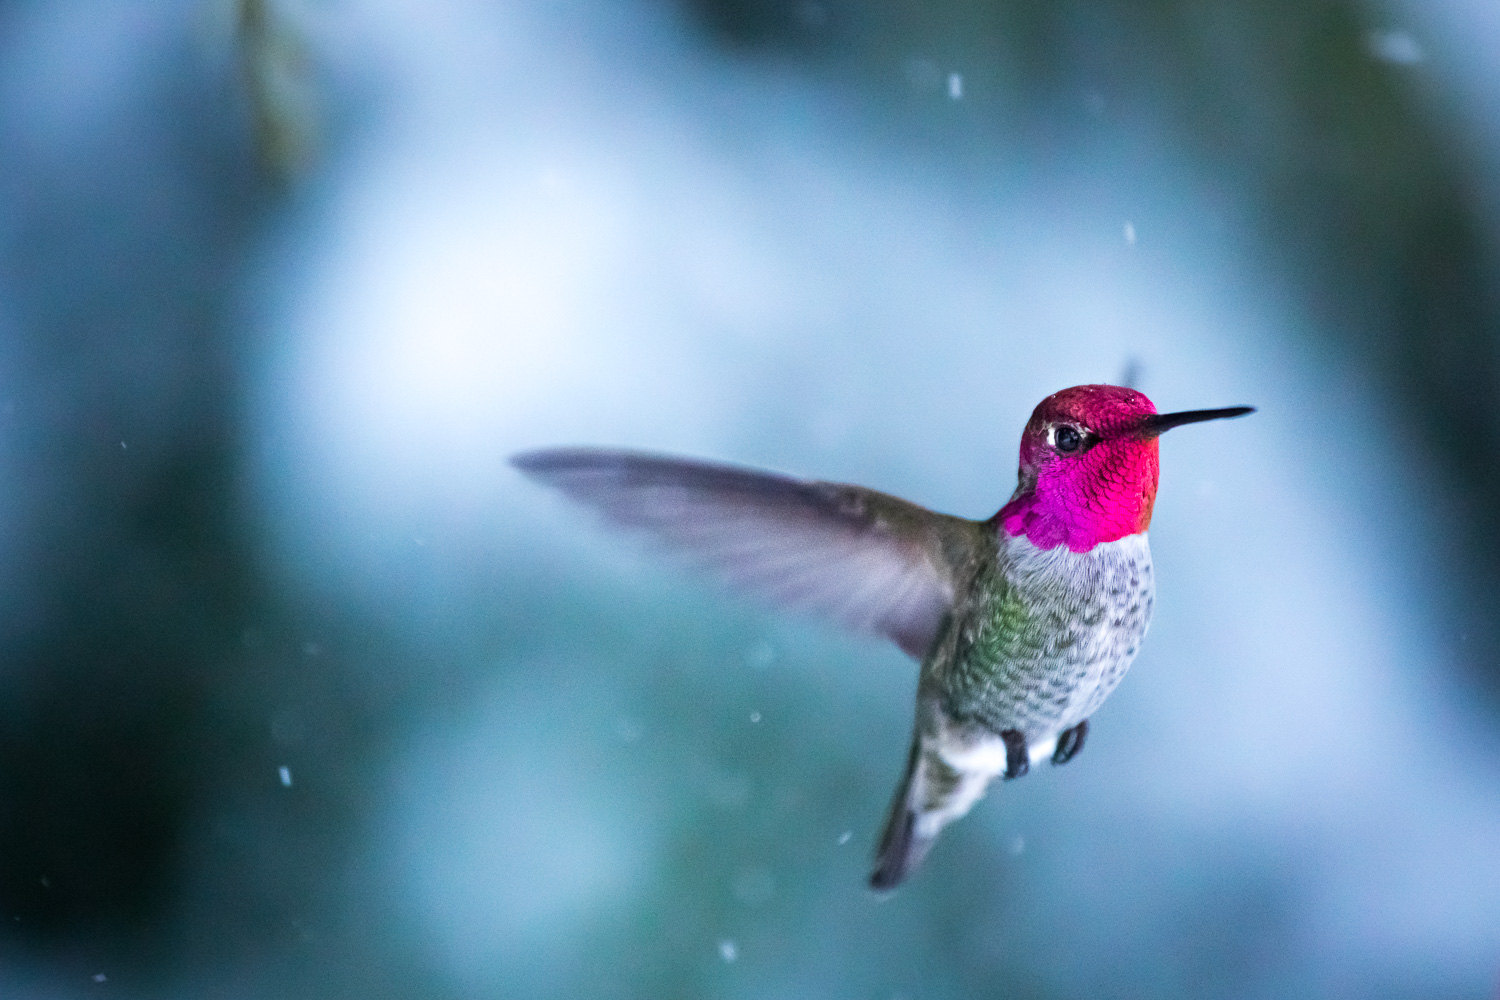 Early in 2017 I got hooked on photographing the beautiful Anna's hummingbirds living in our backyard. It was still winter and their colours stood out in shimmering contrast to the white snow. Since they move at incredible speeds, it was quite a challenge to capture a clear shot of one. But after spending many hours watching them, I began to notice some patterns as to where they would hover or perch on a branch. I set my camera up on a tripod underneath a make-shift blind and pre-focused the lens to the location I thought the birds would be. Then, using a remote live-view shooting feature on my new Canon 5D MKIV, I would trigger the camera from my phone at a distance. The plane of focus on the macro lens was razor thin so I was thrilled when I saw the bird's eyes and bright feathers were in focus. The little snowflakes falling around him topped it all off.